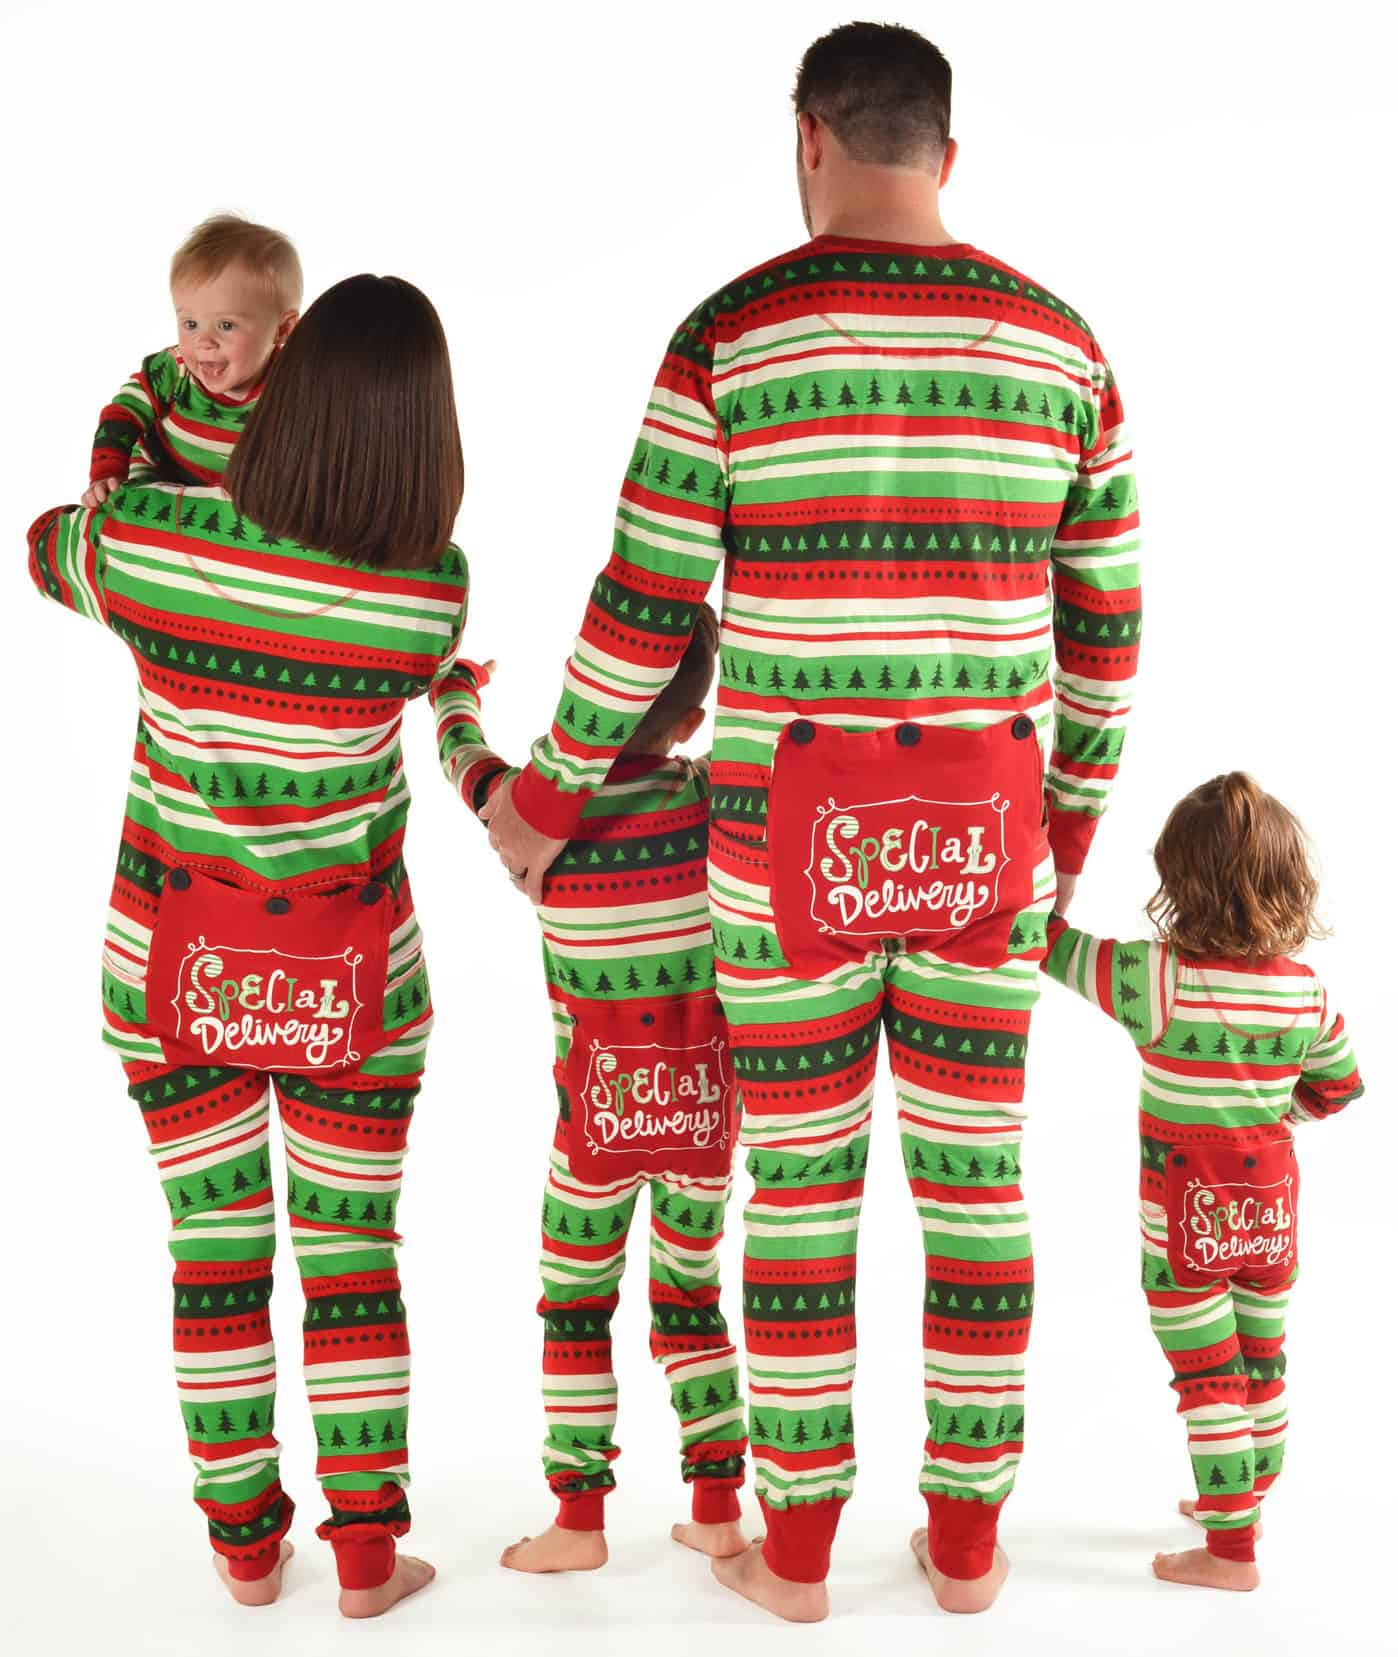 Christmas Family Pajamas for Matching Christmas Morning Pictures